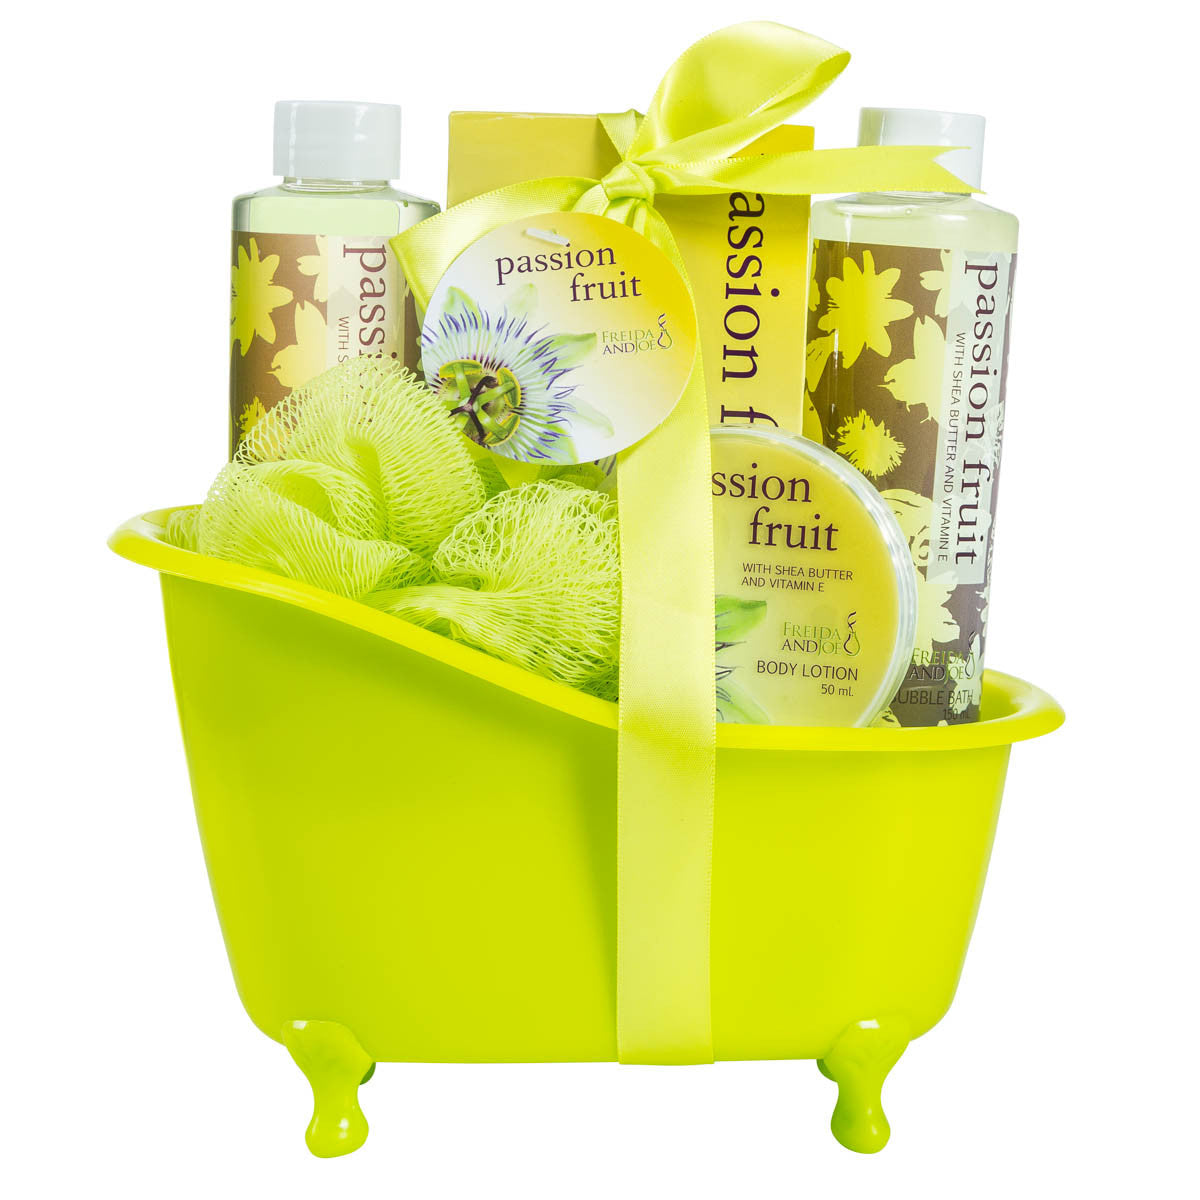 Passion Fruit Tub Bath Spa Set: Shower Gel, Bubble Bath, Body Lotion, Bath Salt, & Puff